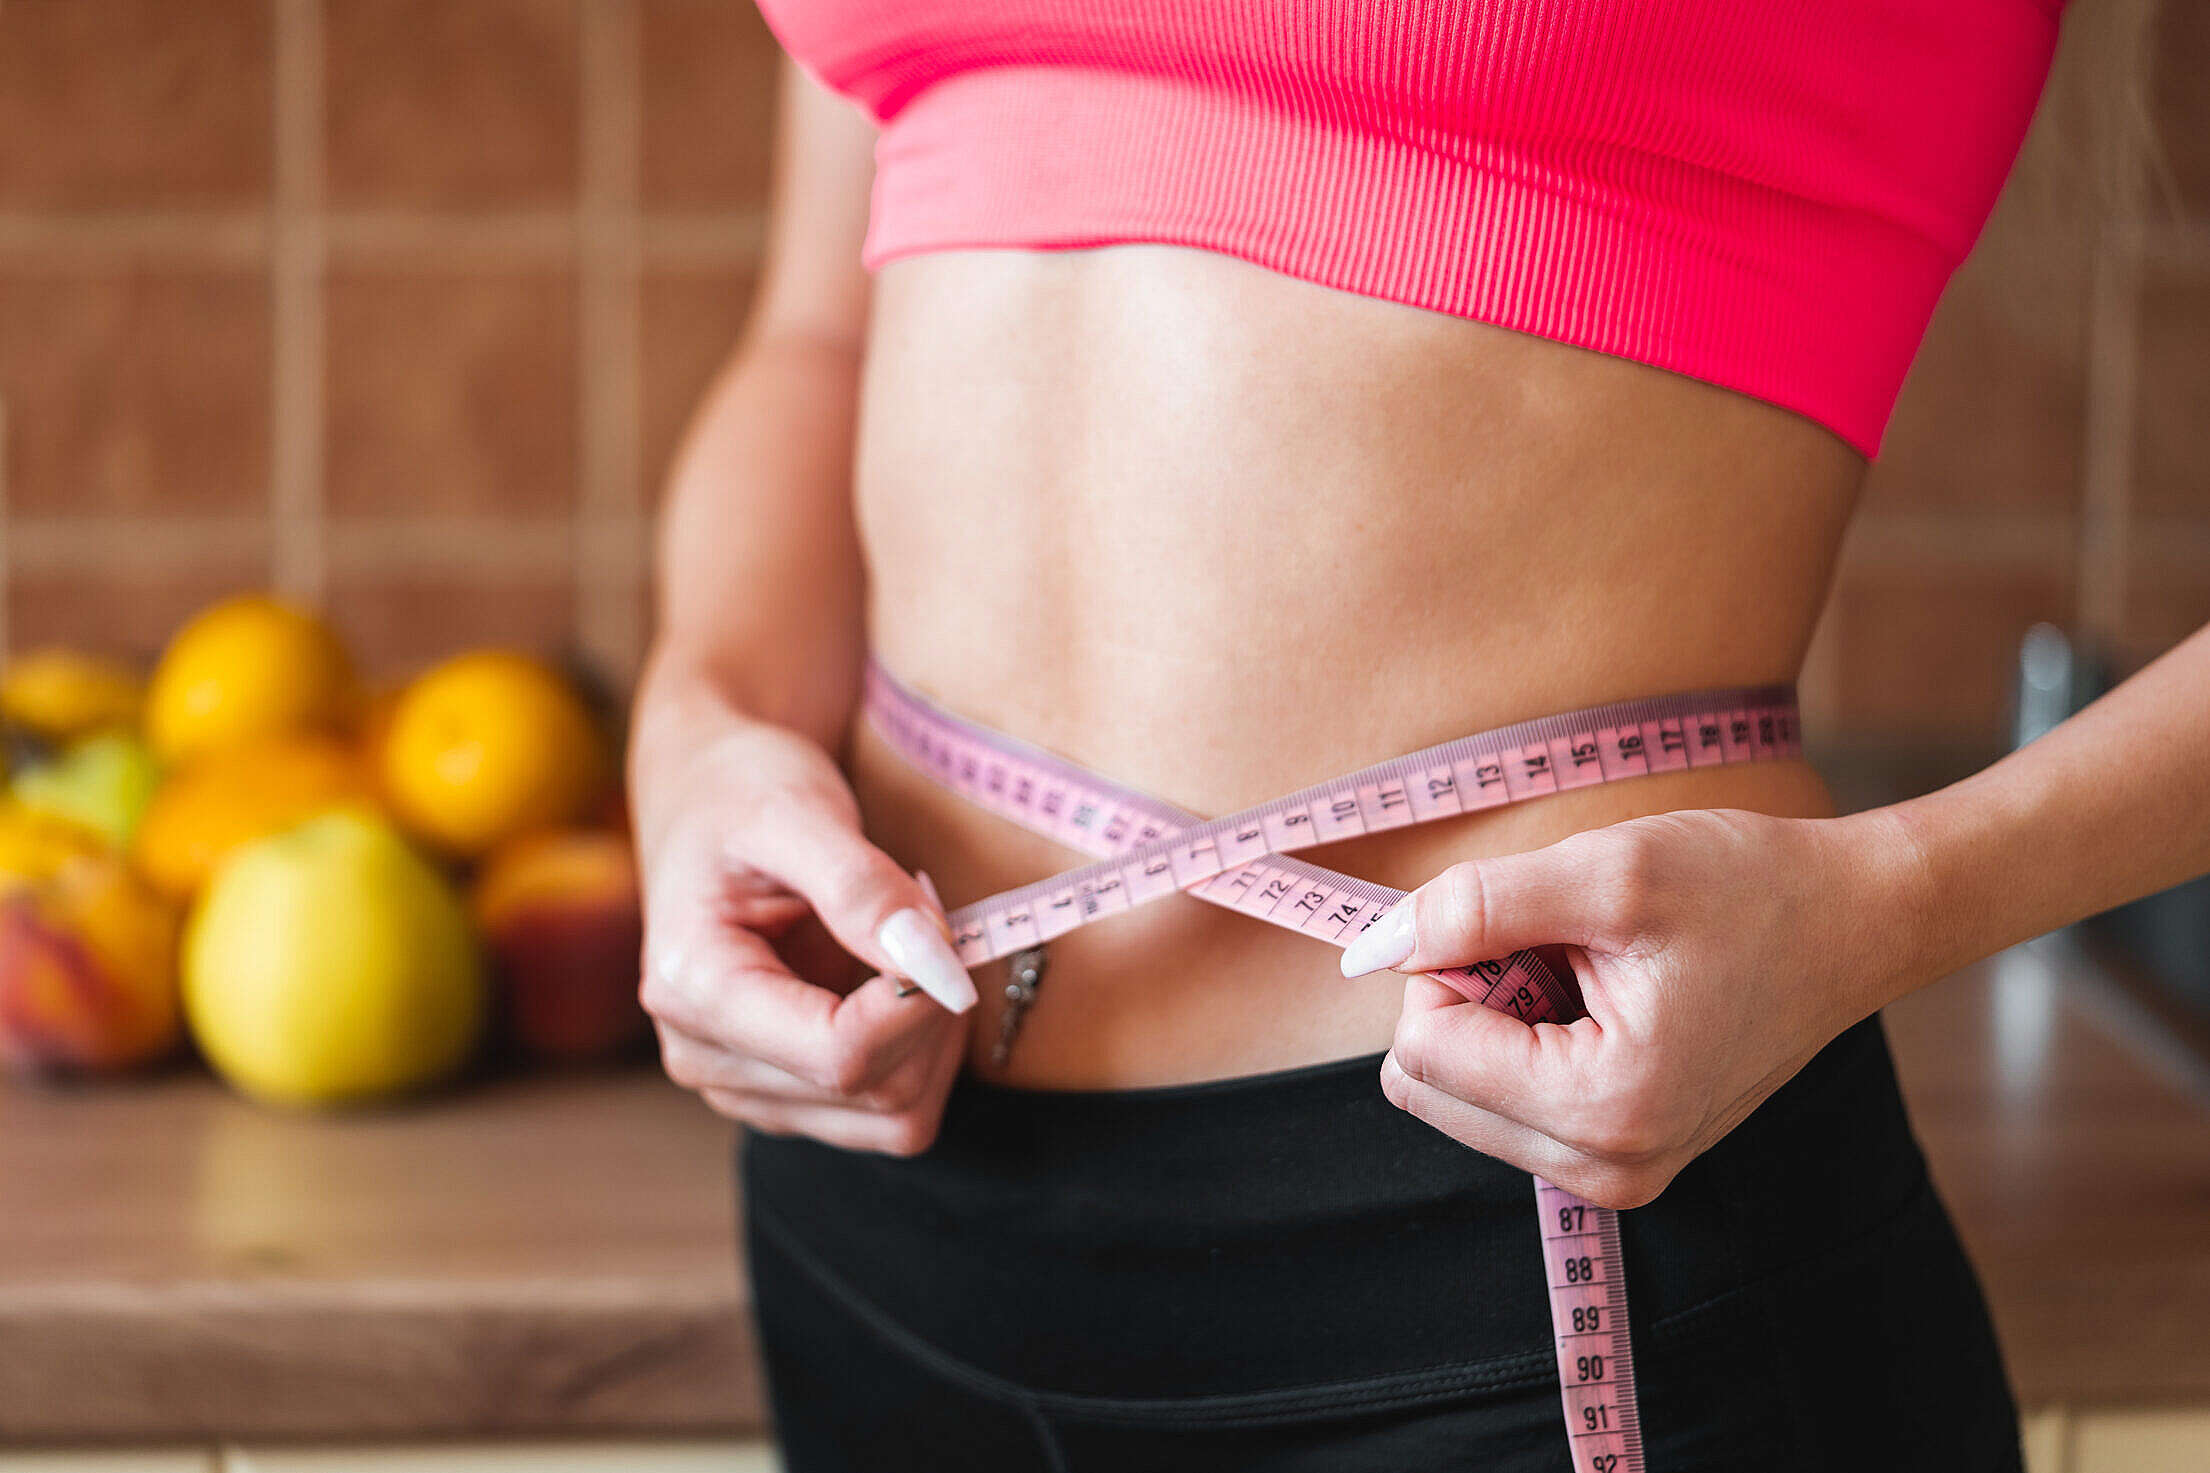 Young Slim Woman Measuring Her Waist by Measure Tape Free Stock Photo